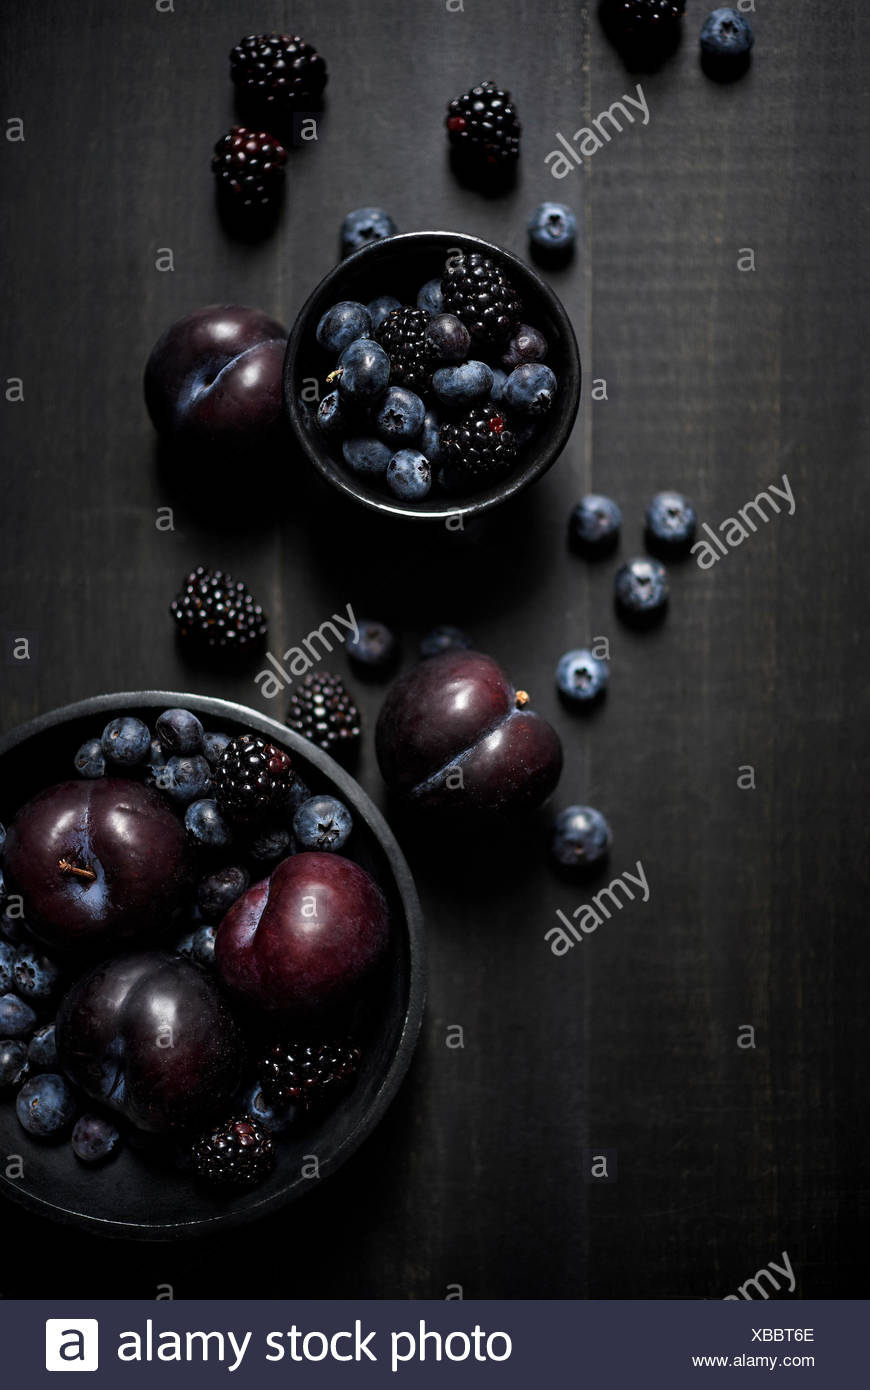 Bowls of blue and black fruits laid out artistically and beautifully on a dark wood surface. Dark and moody. - Stock Image